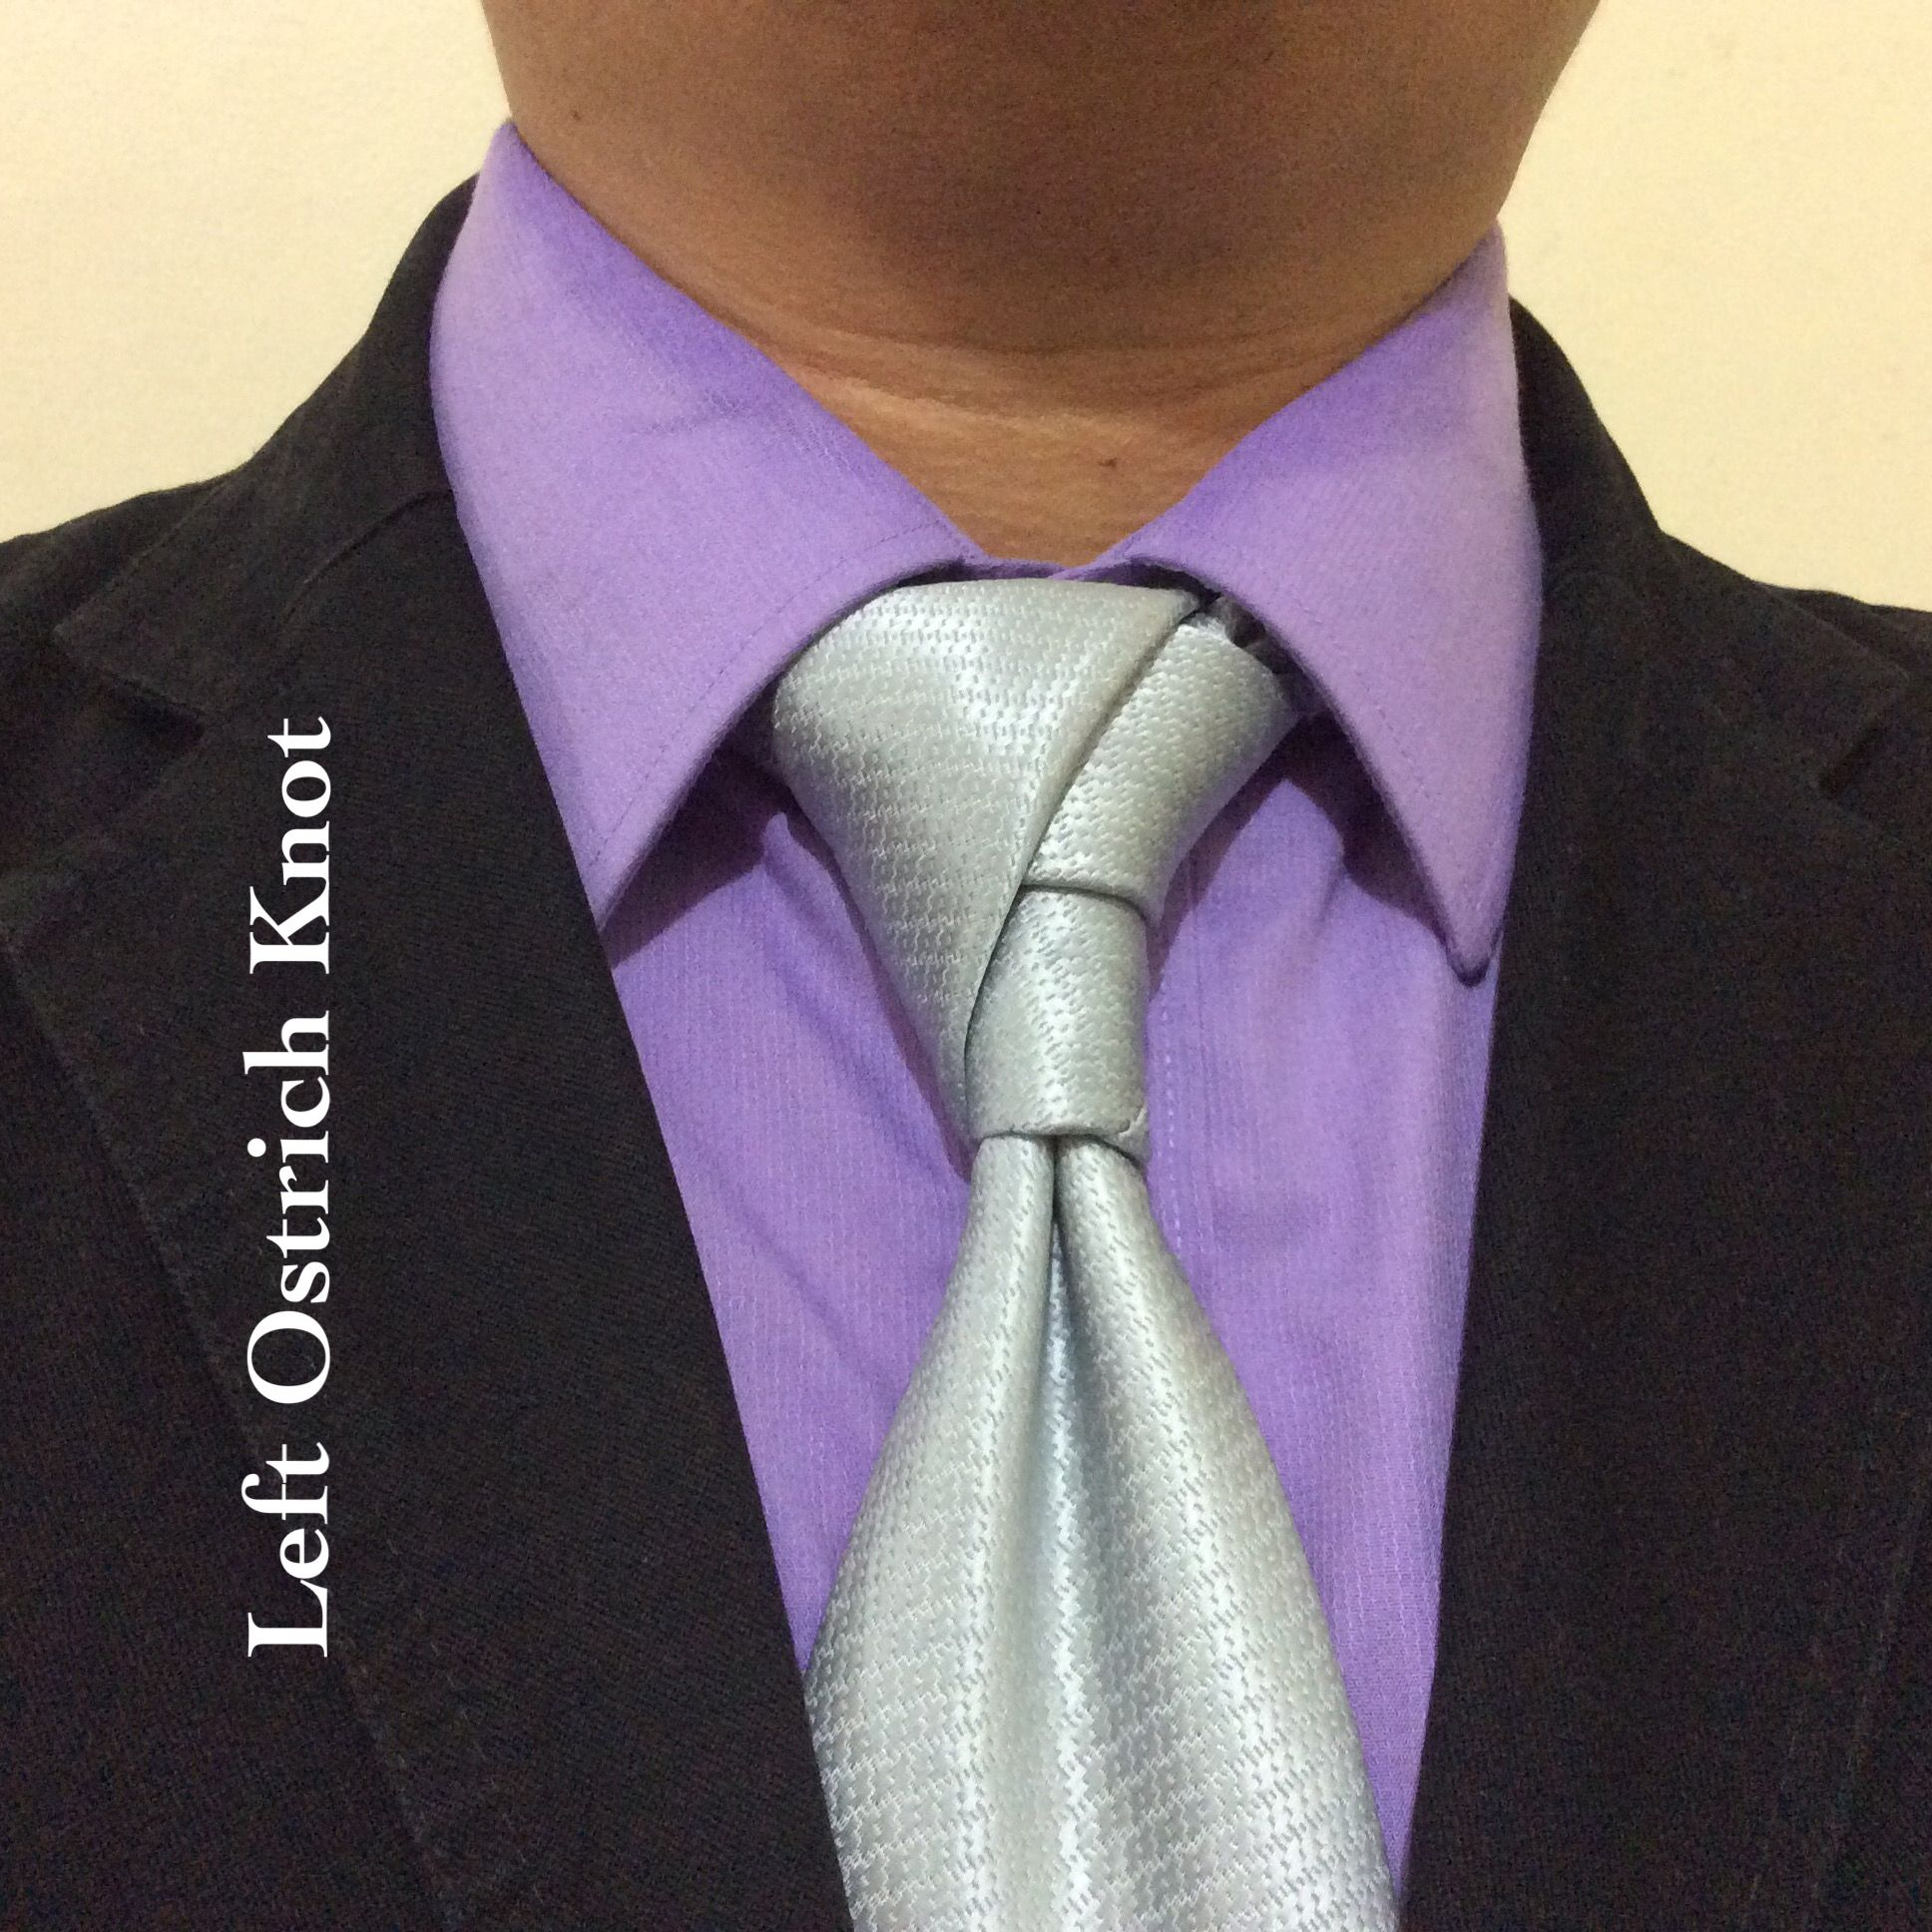 Miguel Angel Eugeniopalossan On Pinterest Trinity Tie Knot Diagram How To A Van Wijk Necktie